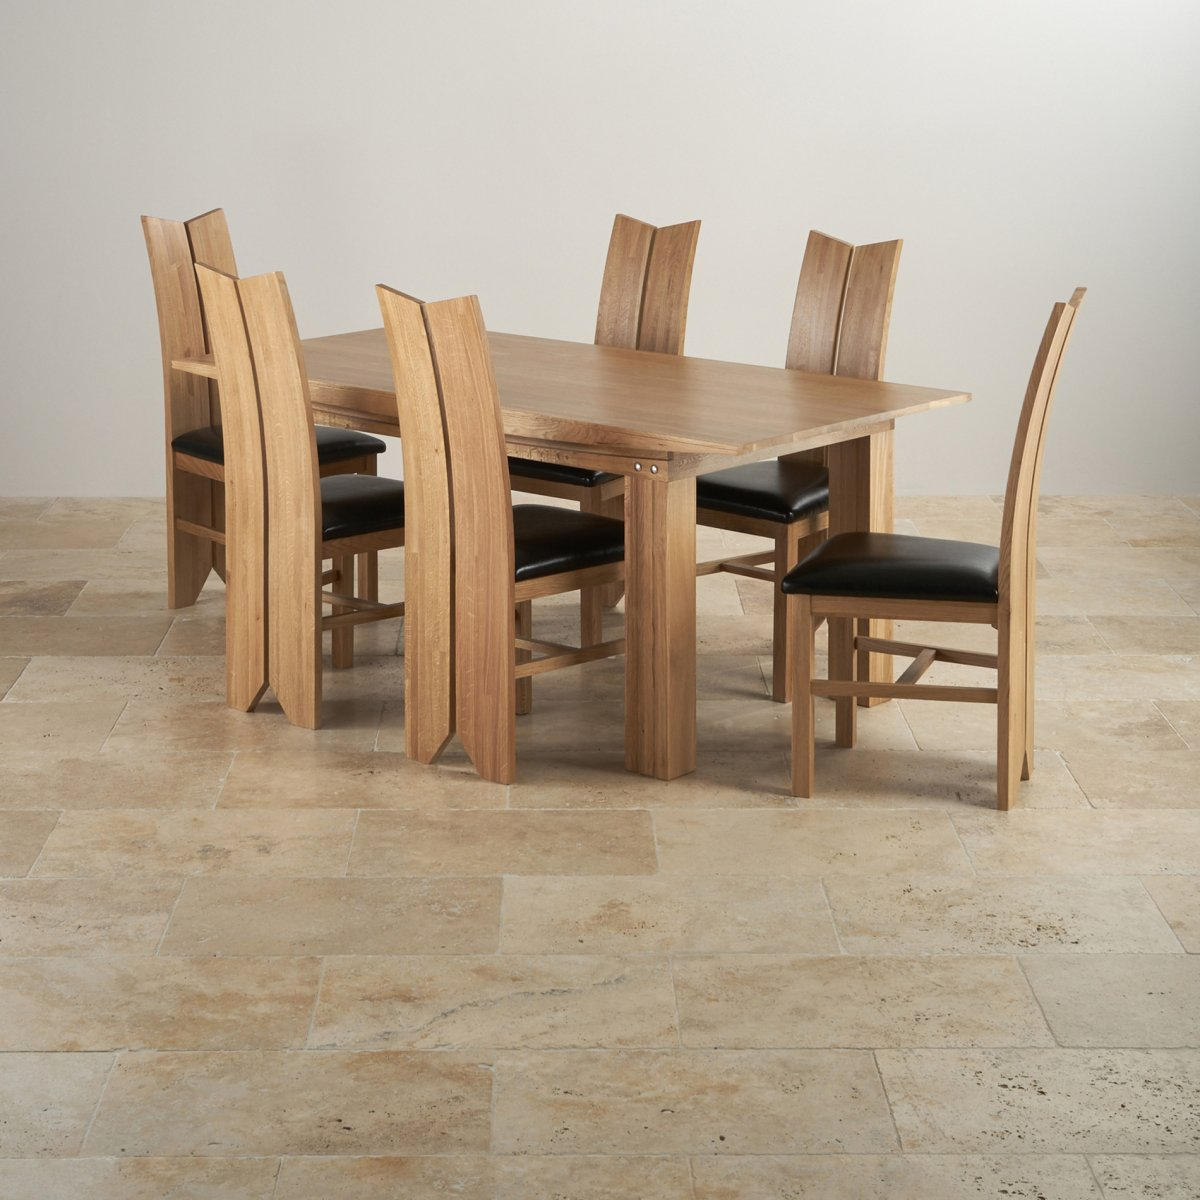 Solid Dining Table And Chairs: Tokyo Dining Set In Oak: Table + 6 Tulip Black Leather Chairs